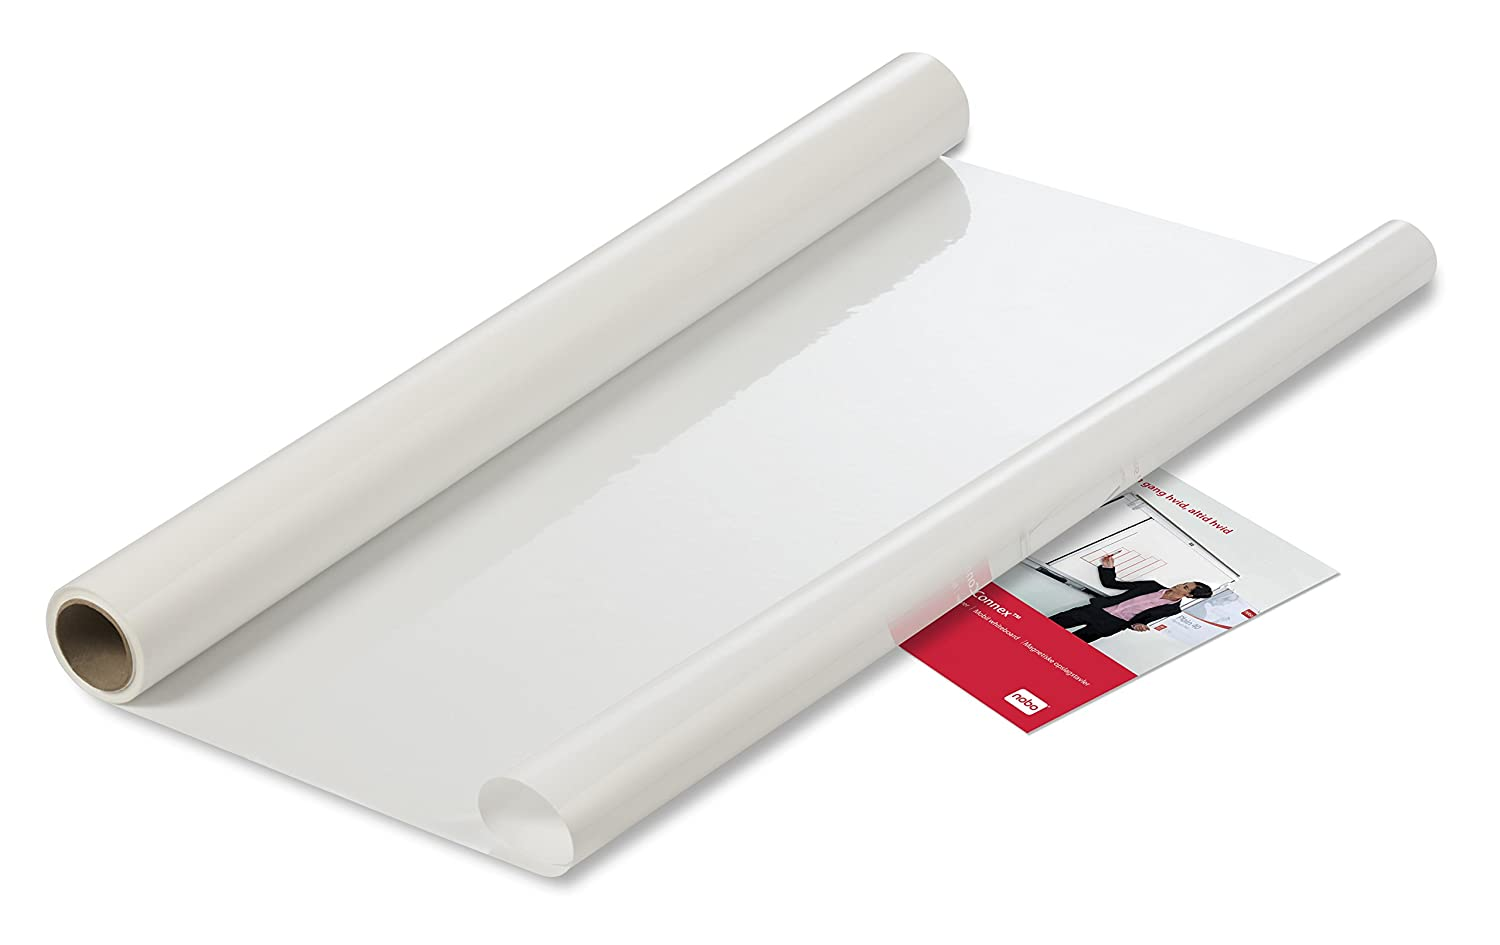 Nobo Whiteboard Sheets Instant Dry Wipe Electrostatic Sheets White and Grey Squared Removable Dry Wipe Surface Stick Anywhere for an Instant Pack of 25 800 x 600 mm 1905157